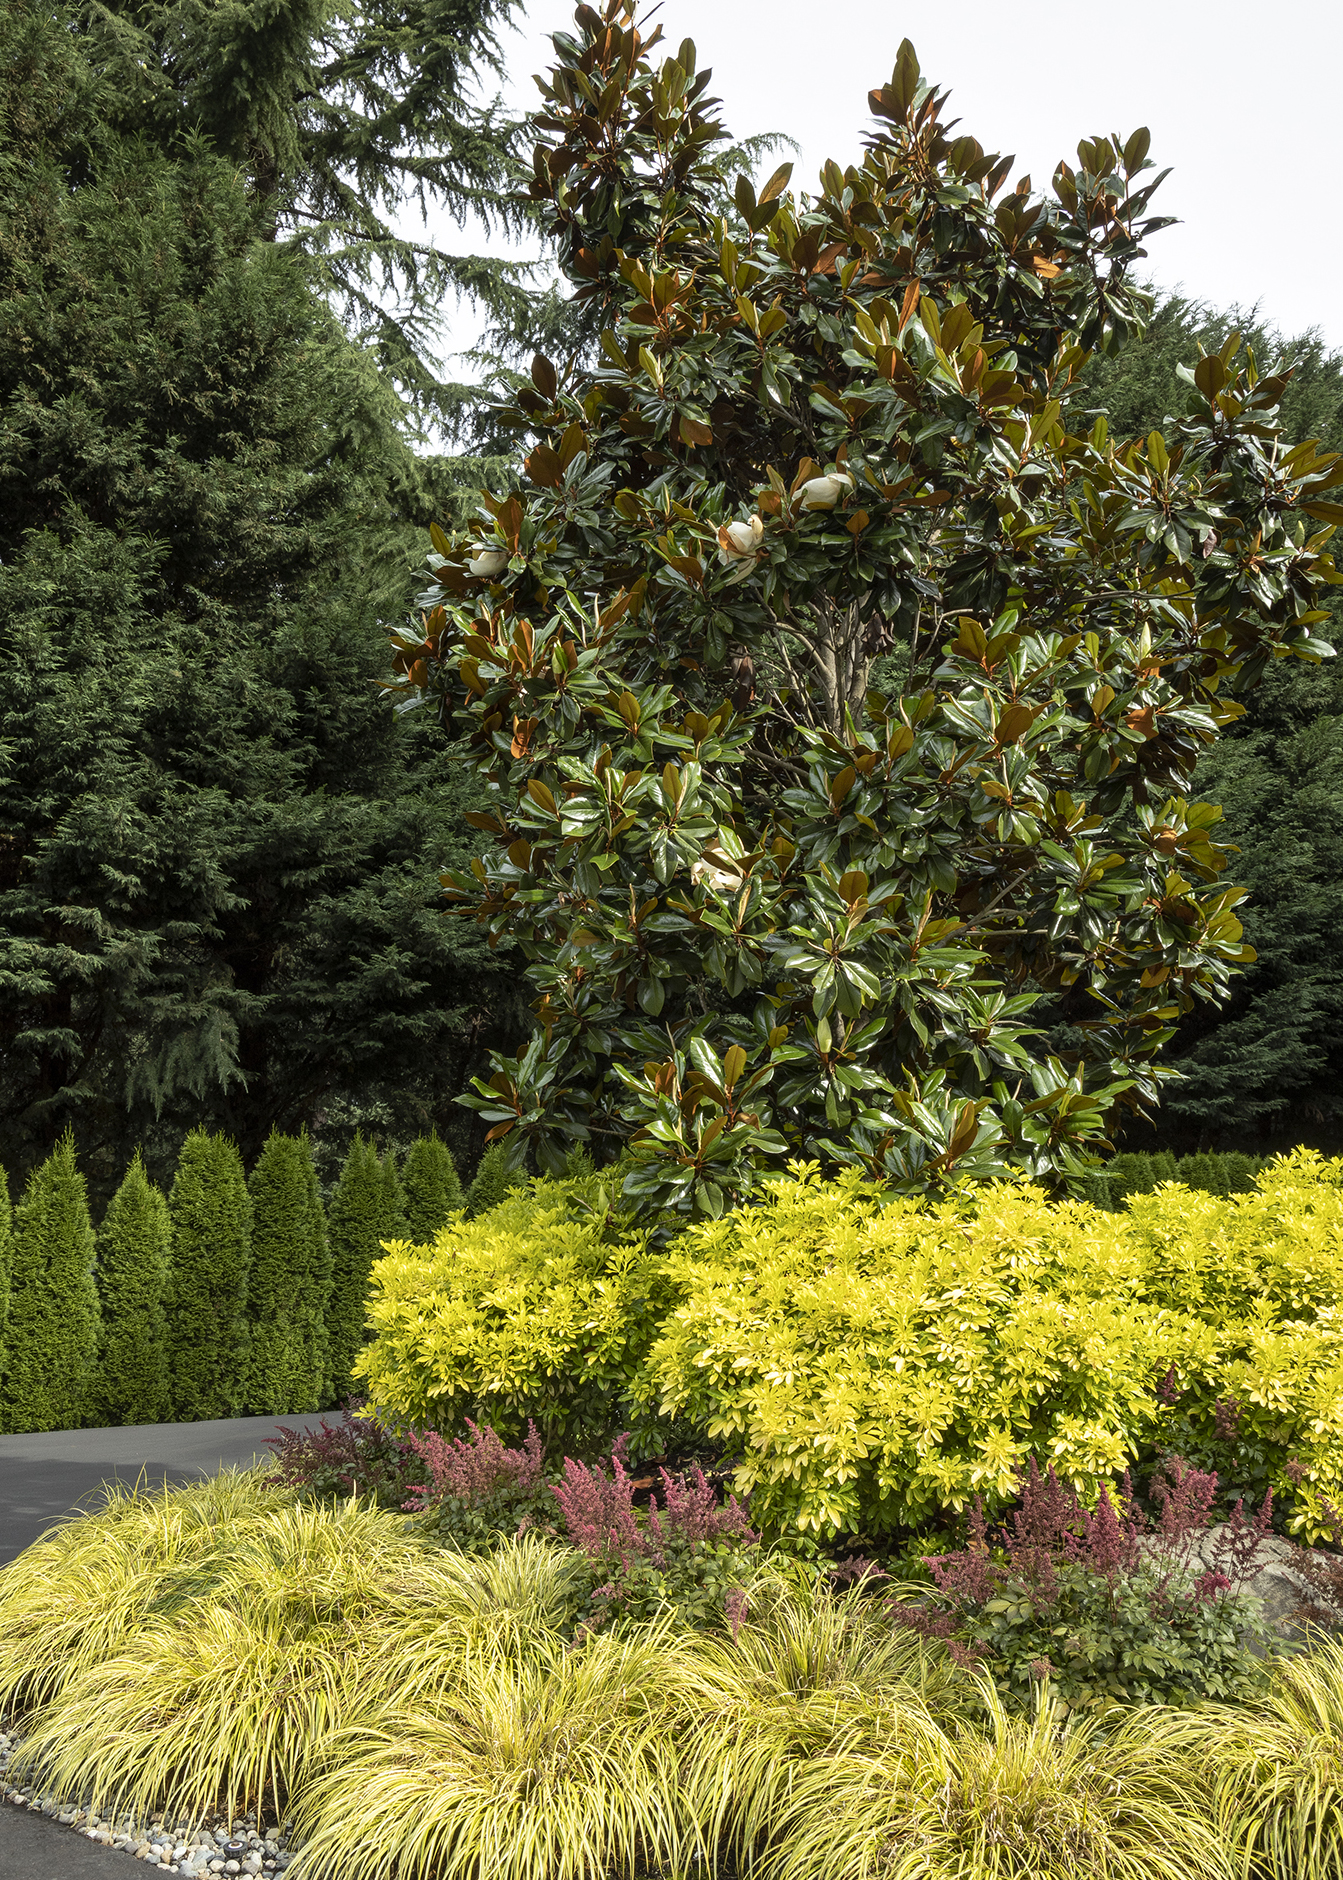 magnolia tree with shrubs and grass